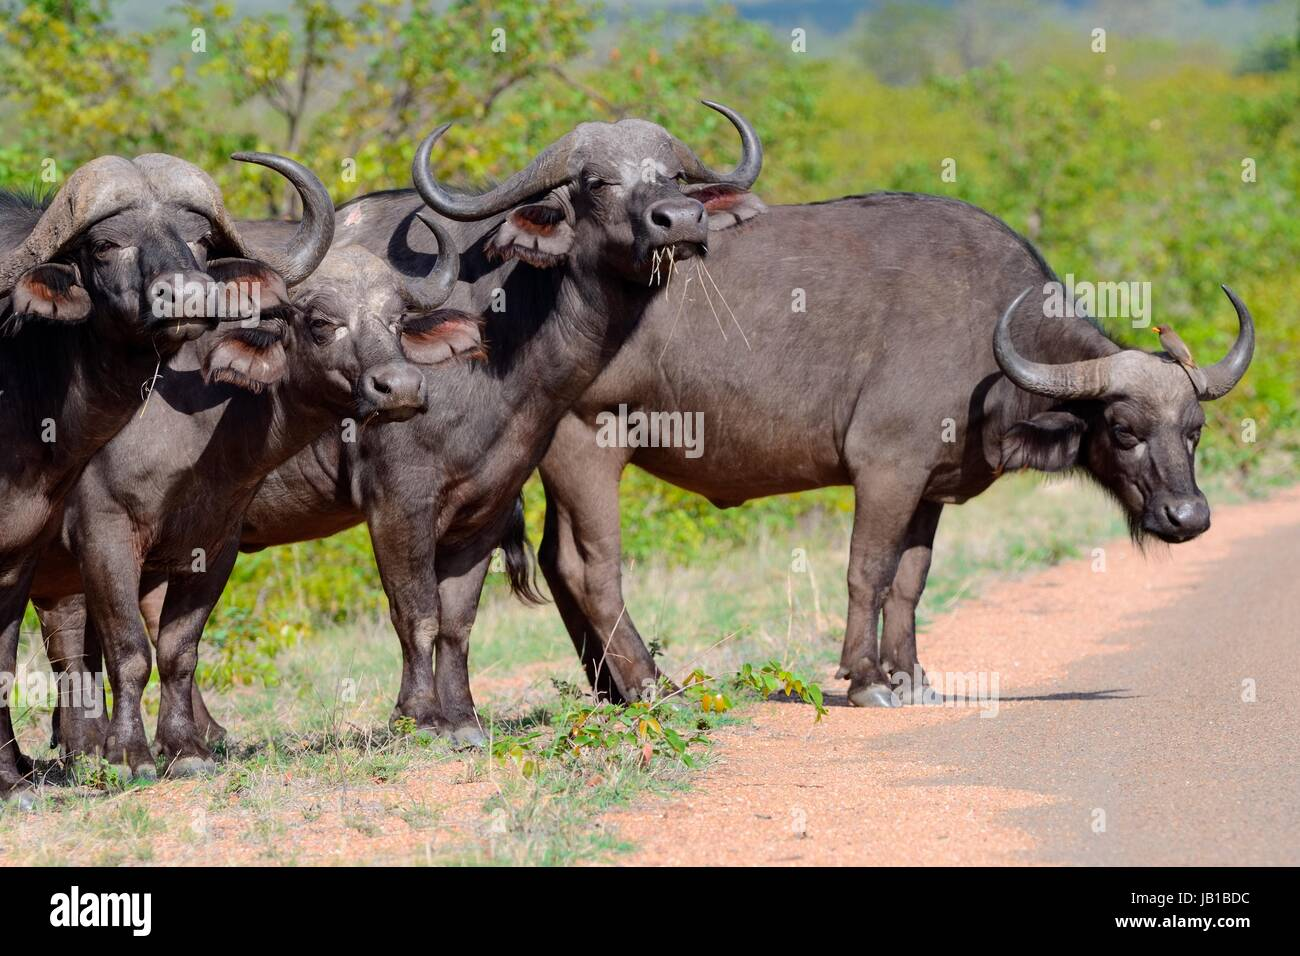 African buffaloes (Syncerus caffer) standing in row by the side of the paved road with one Red-billed oxpecker (Buphagus - Stock Image